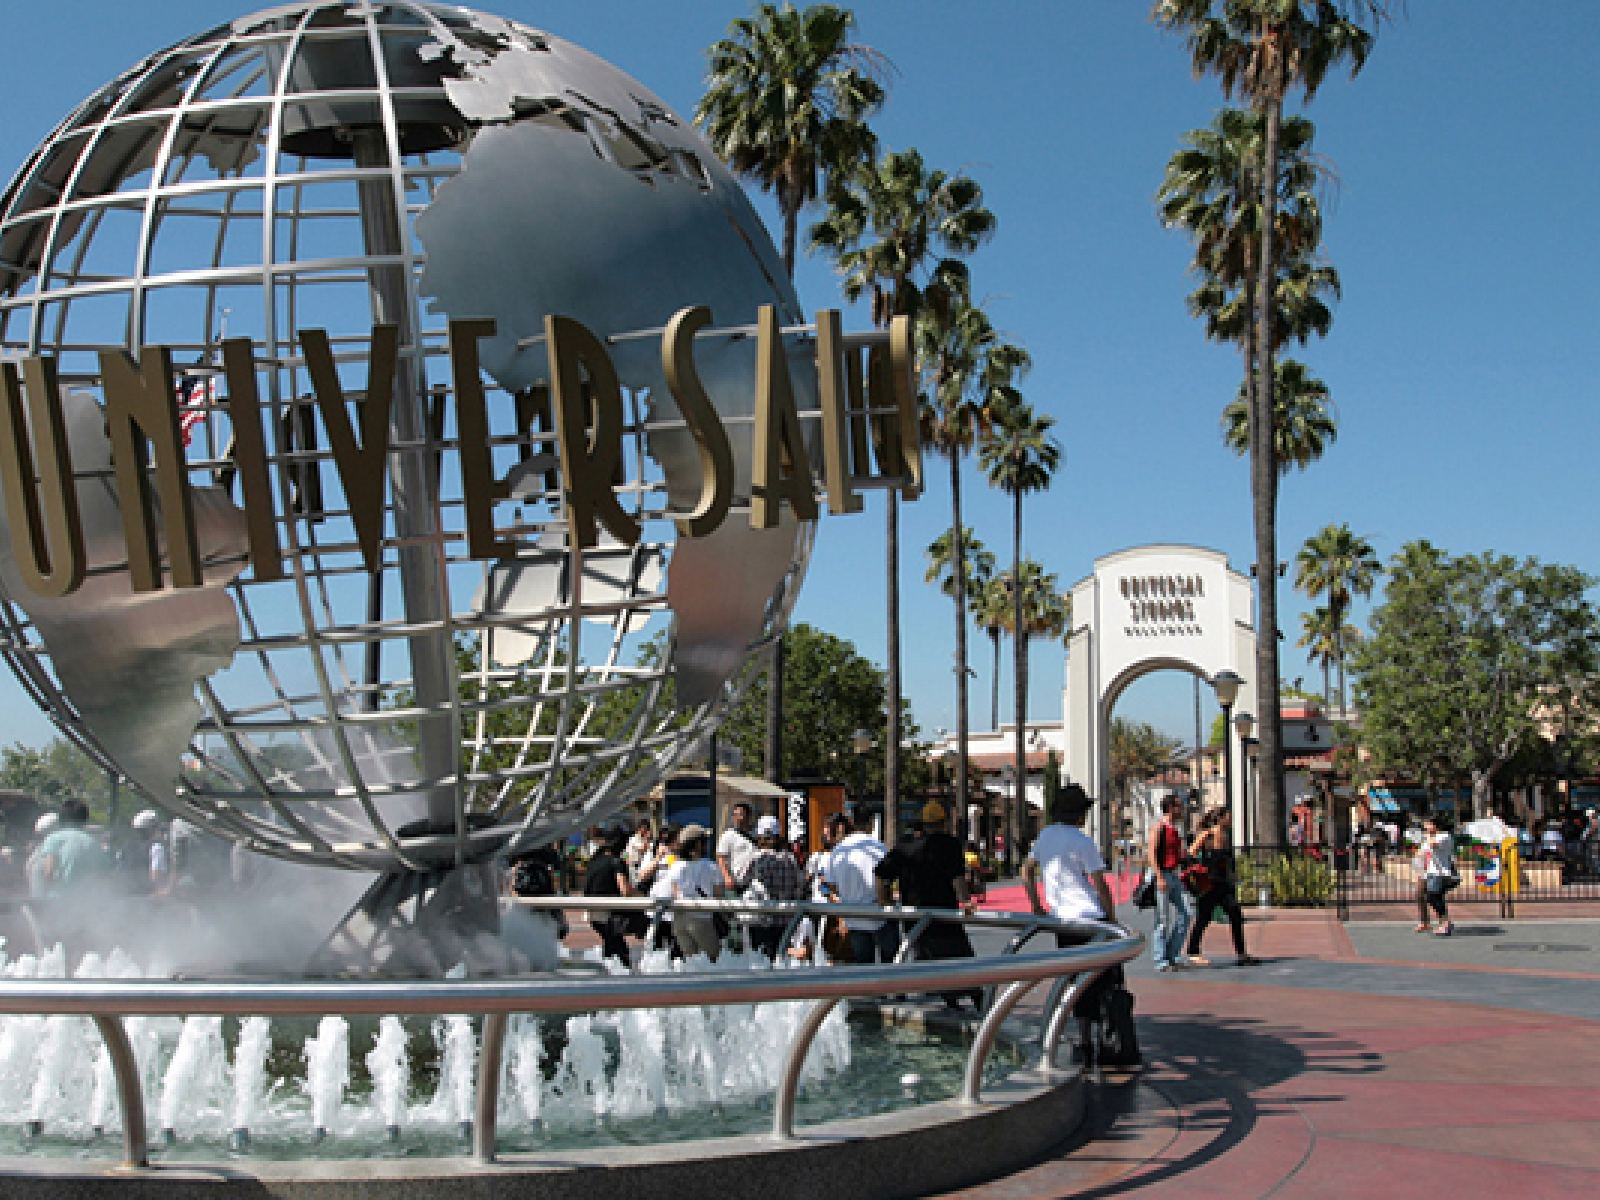 Main image for article titled Le top 10 des incontournables d'Universal Studios Hollywood